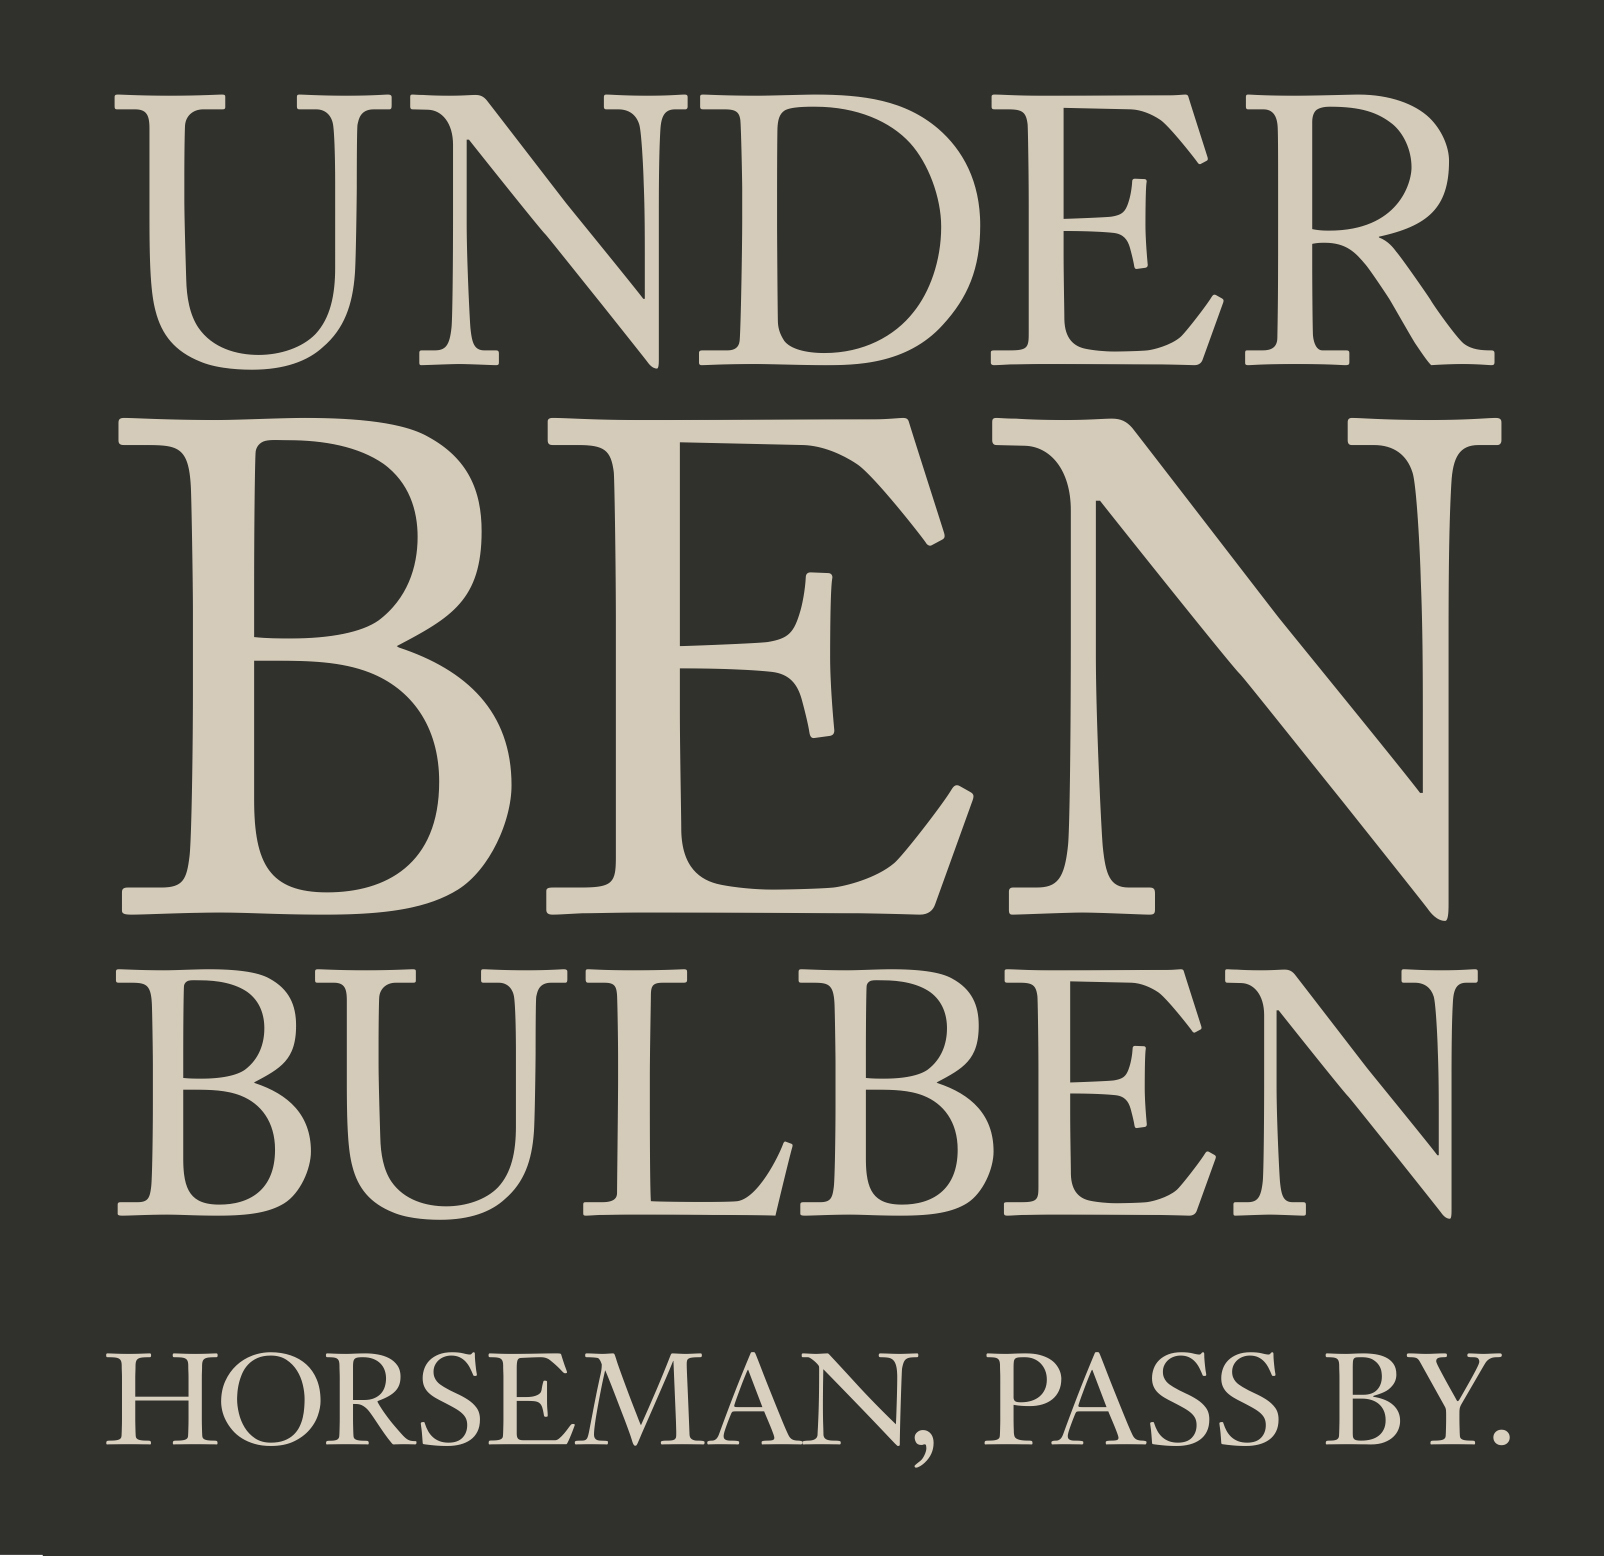 Horseman, Pass By. - Under Bulben Ben